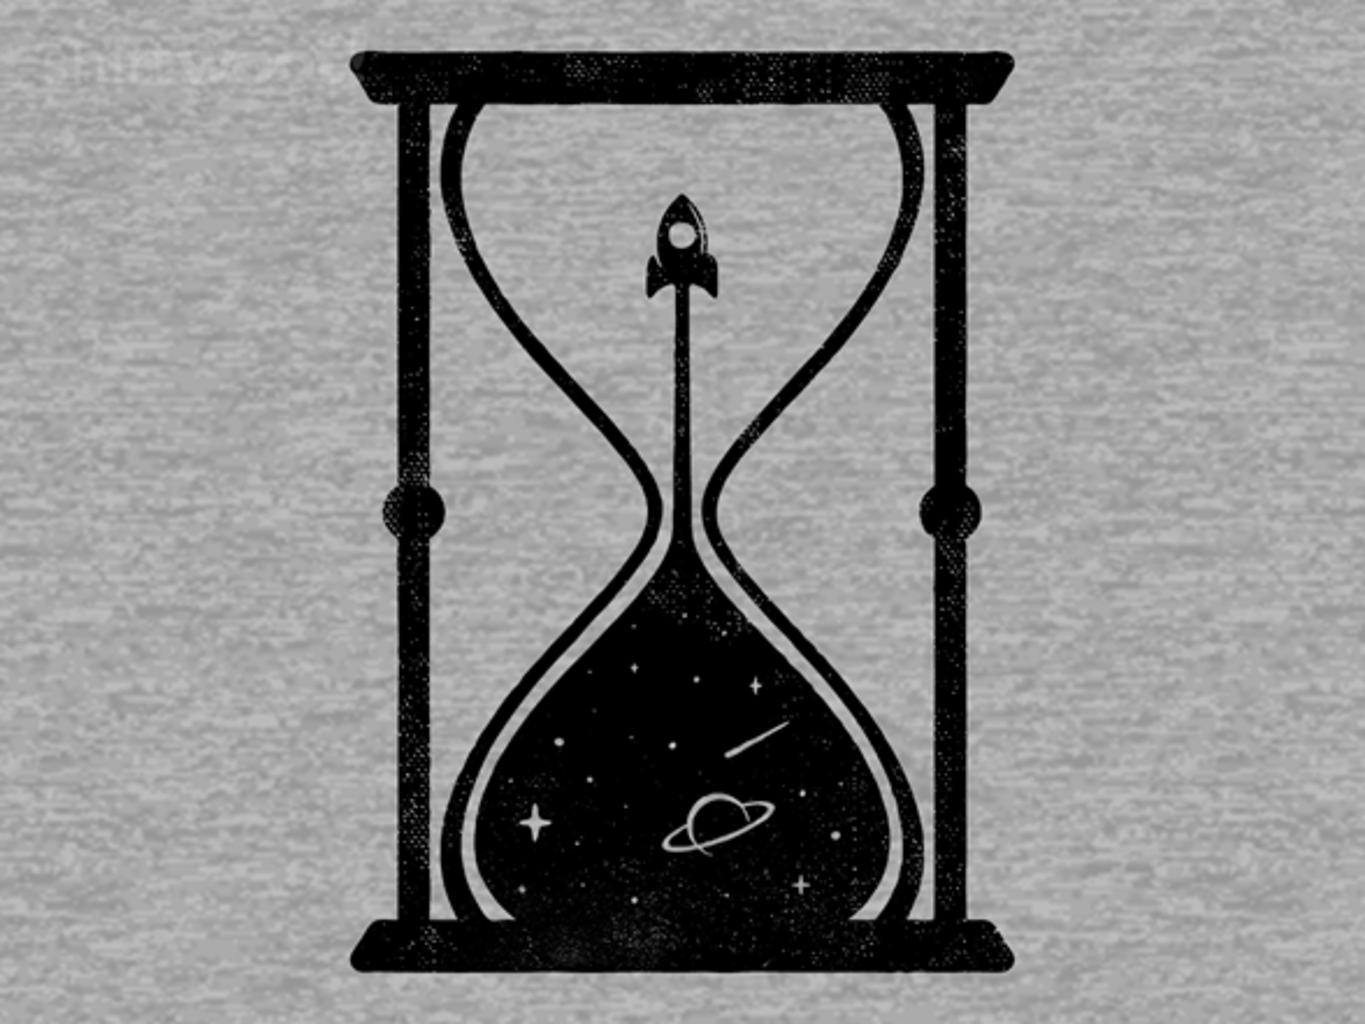 Woot!: Space and Time Travel